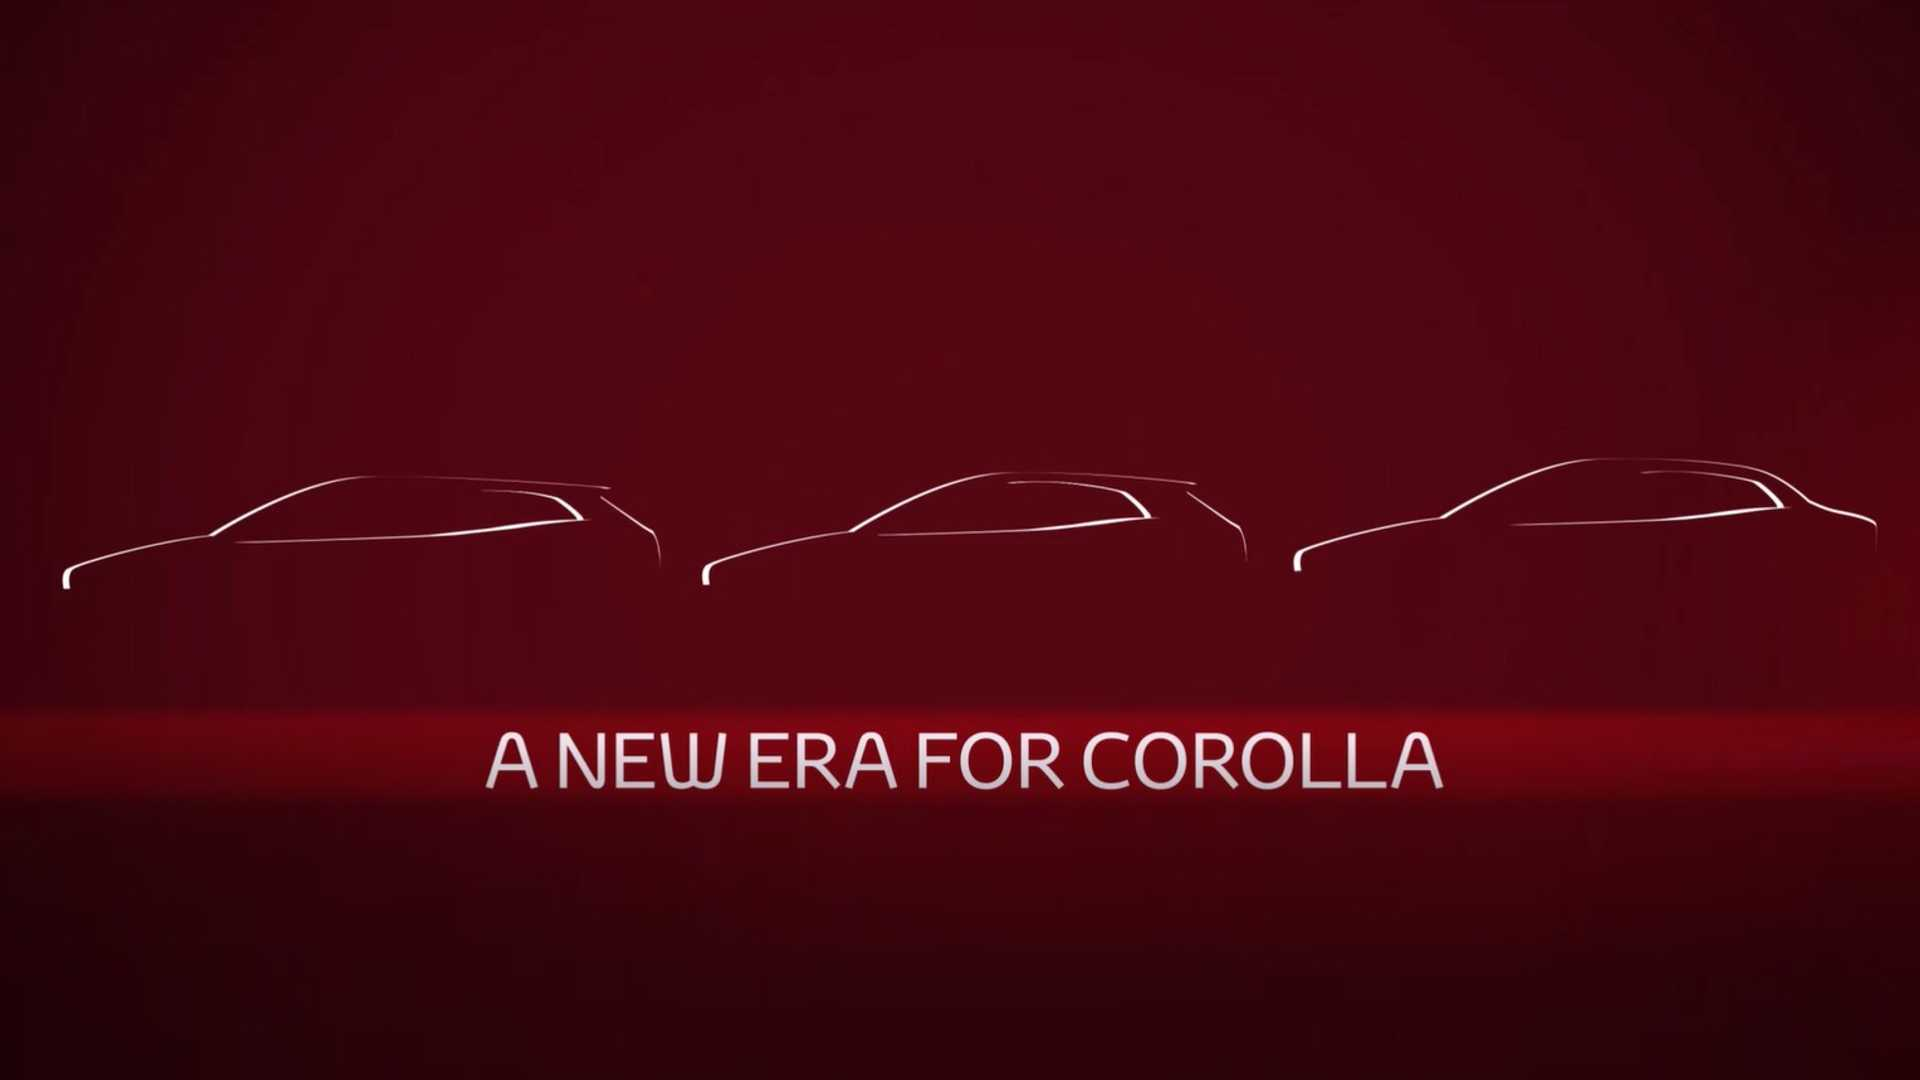 Next Gen Toyota Corolla Altis Teased Ahead of Debut 10